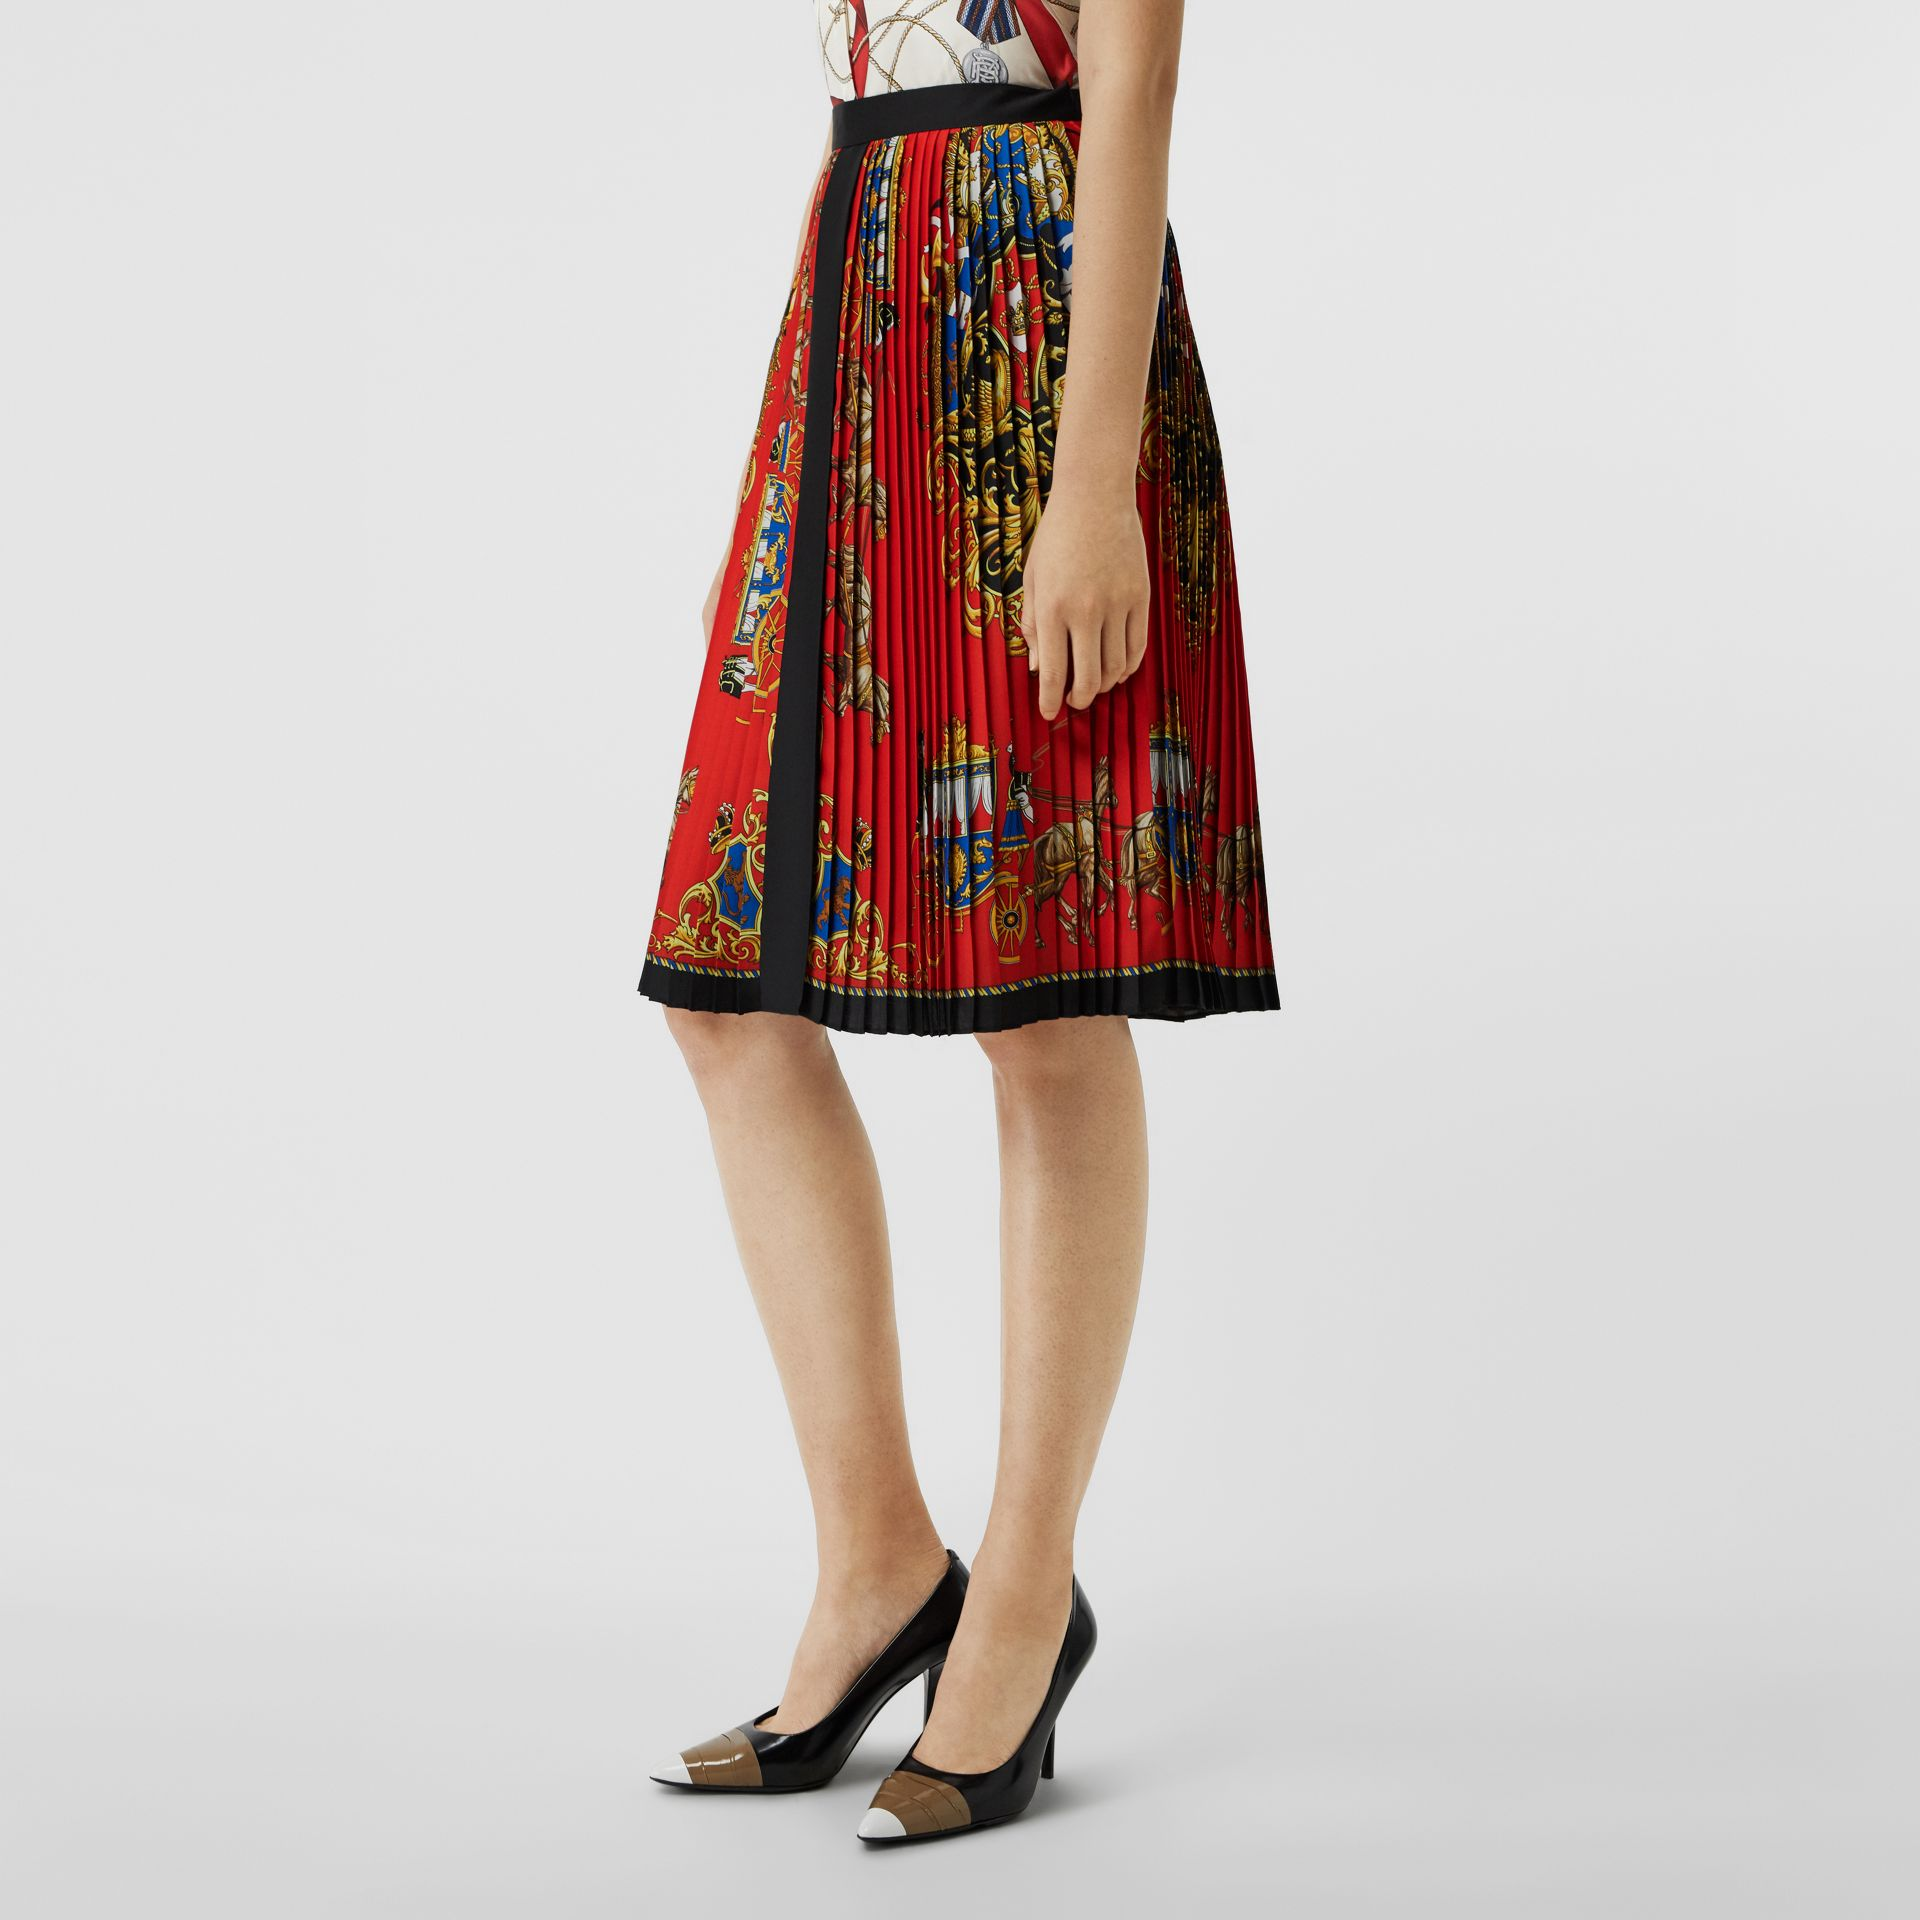 Archive Scarf Print Pleated Skirt in Bright Orange - Women | Burberry Australia - gallery image 4